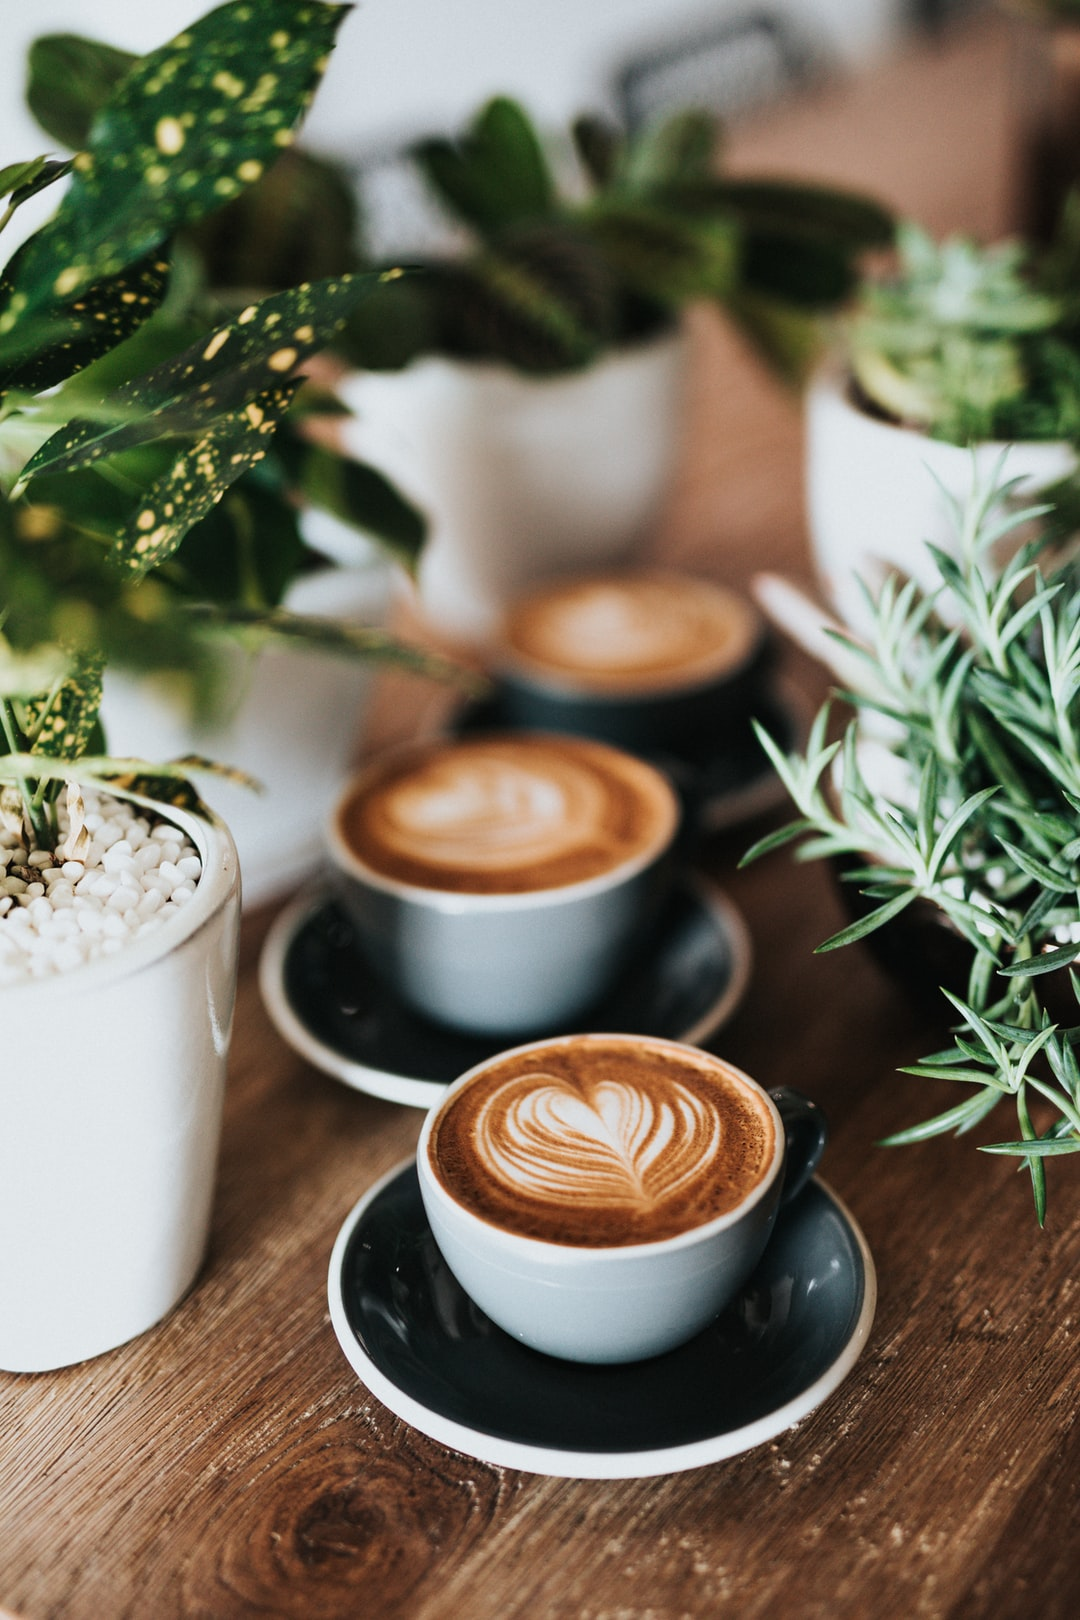 Benefits of Drinking Coffee: Is Drinking Coffee Healthy?